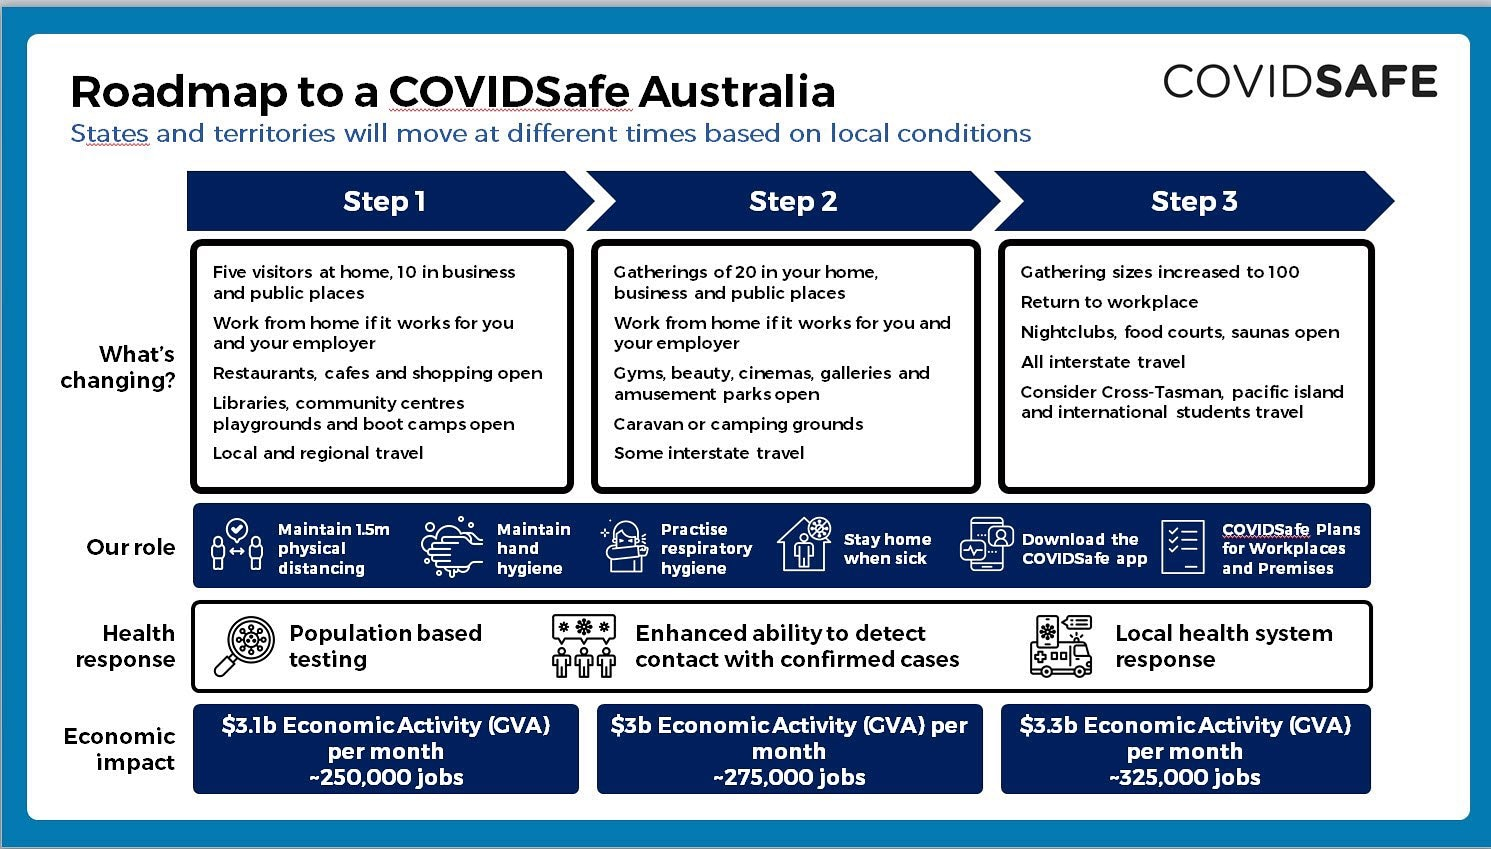 Three stage COVID-safe roadmap aims to have Australia